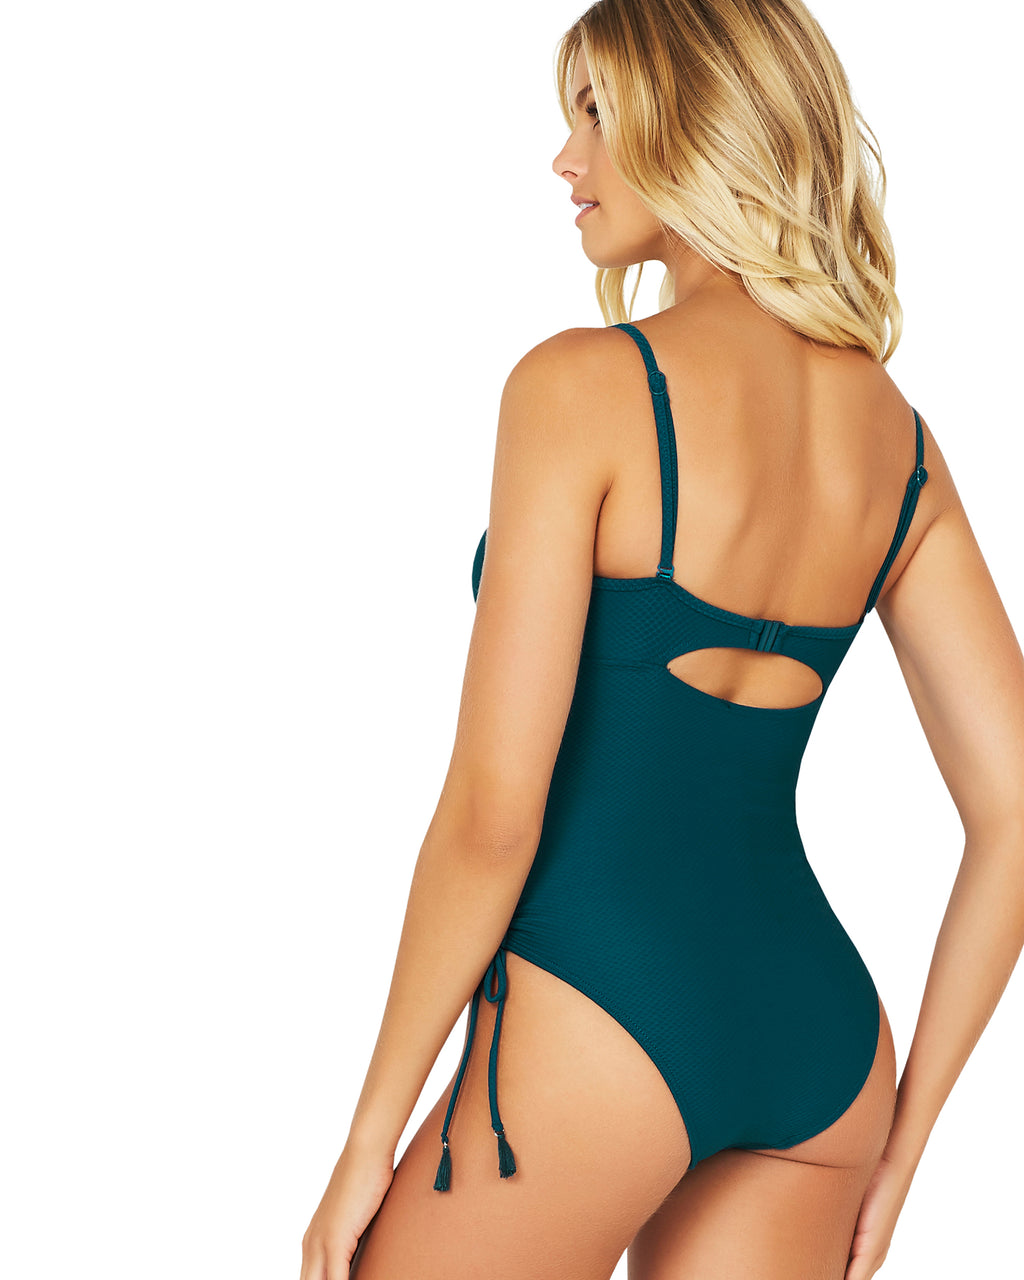 ROCOCCO A-C BRALETTE ONE PIECE SWIMSUIT